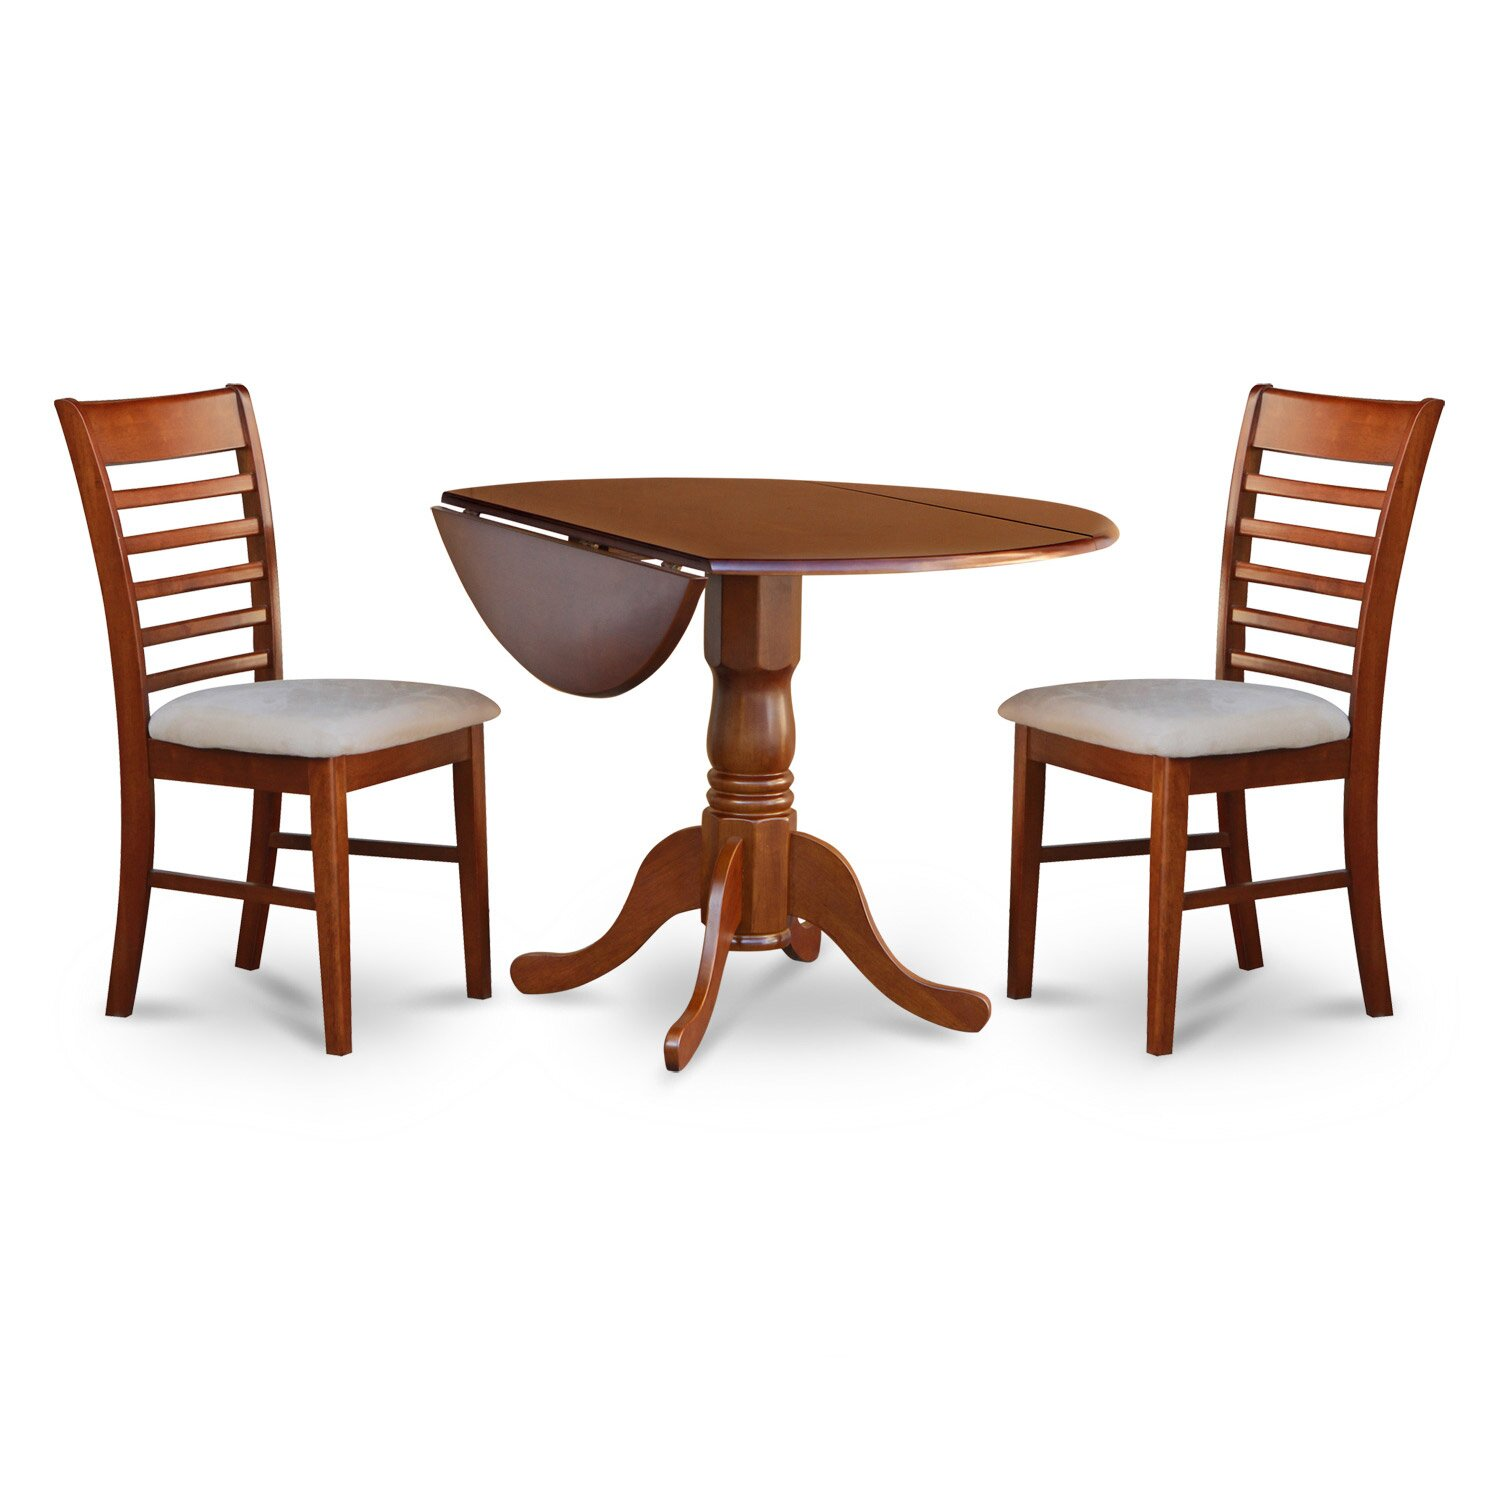 East West Dublin 3 Piece Dining Set Amp Reviews Wayfair